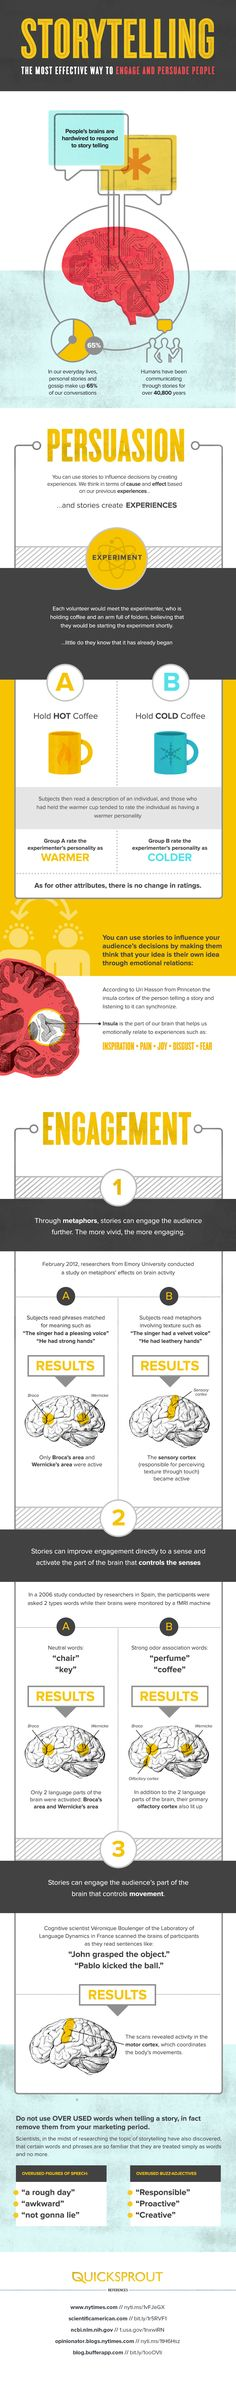 How to Engage and Persuade People Through Storytelling #Infographic